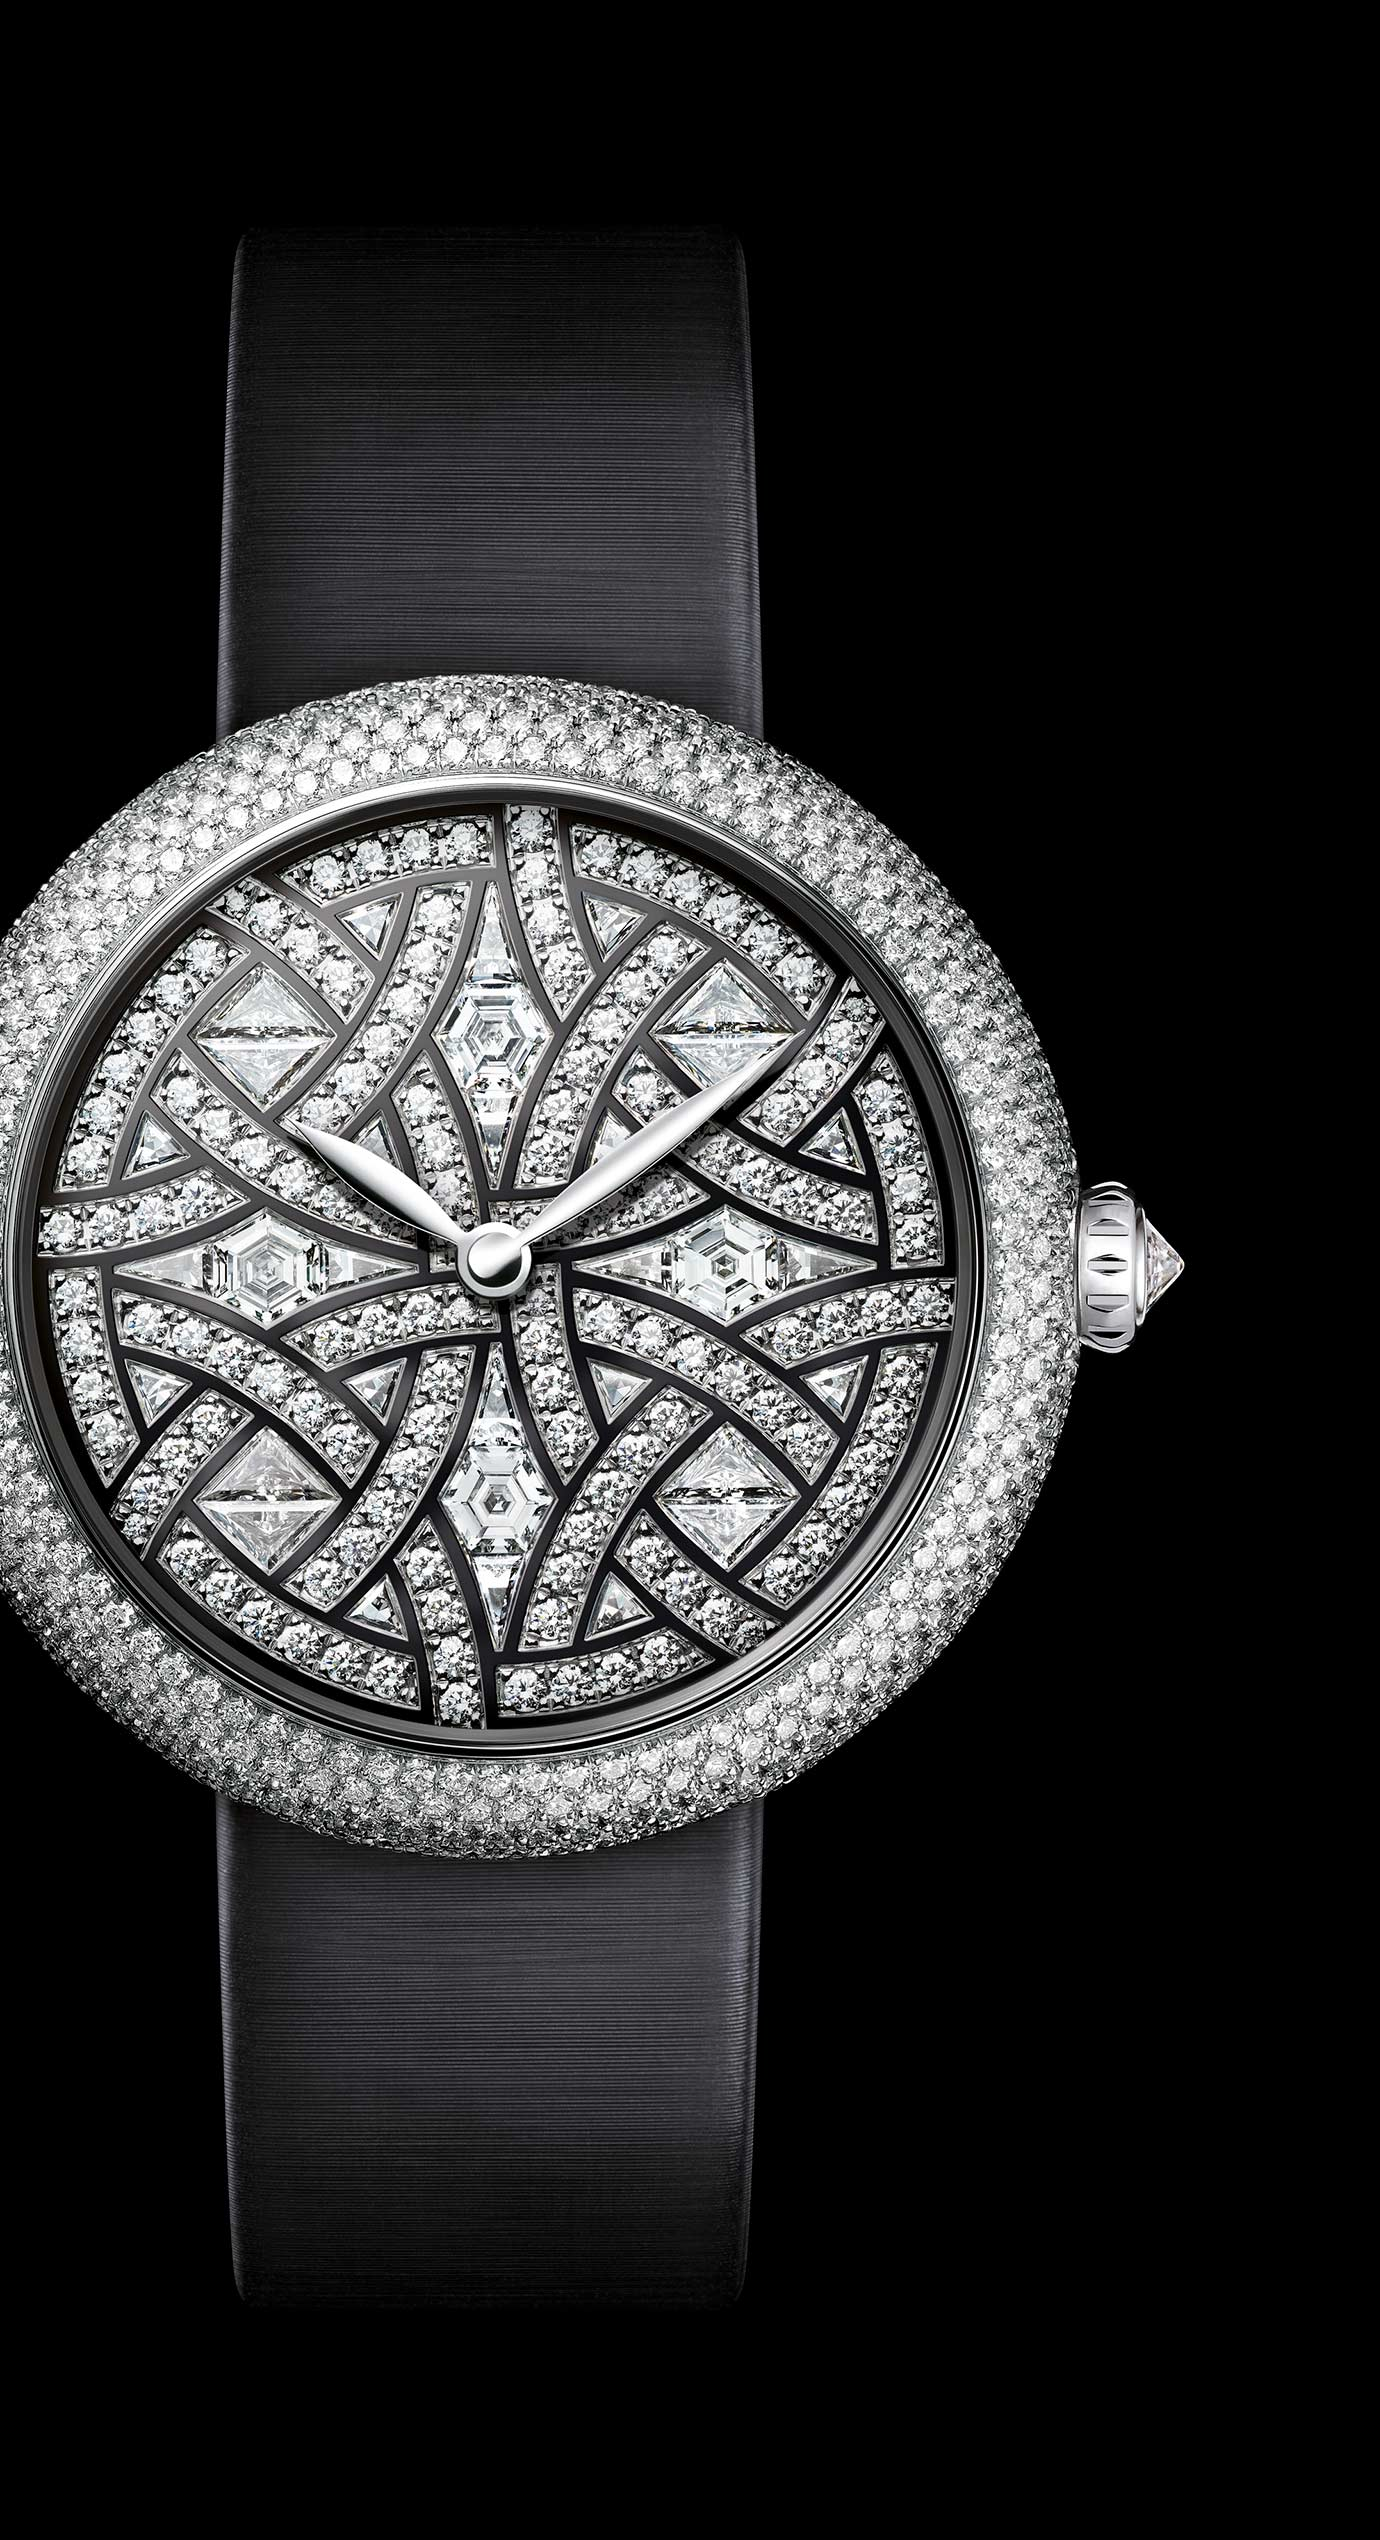 Mademoiselle Privé Bijoux de Diamants Plume Jewellery watch - mother-of-pearl marquetry and diamonds. - Enlarged view